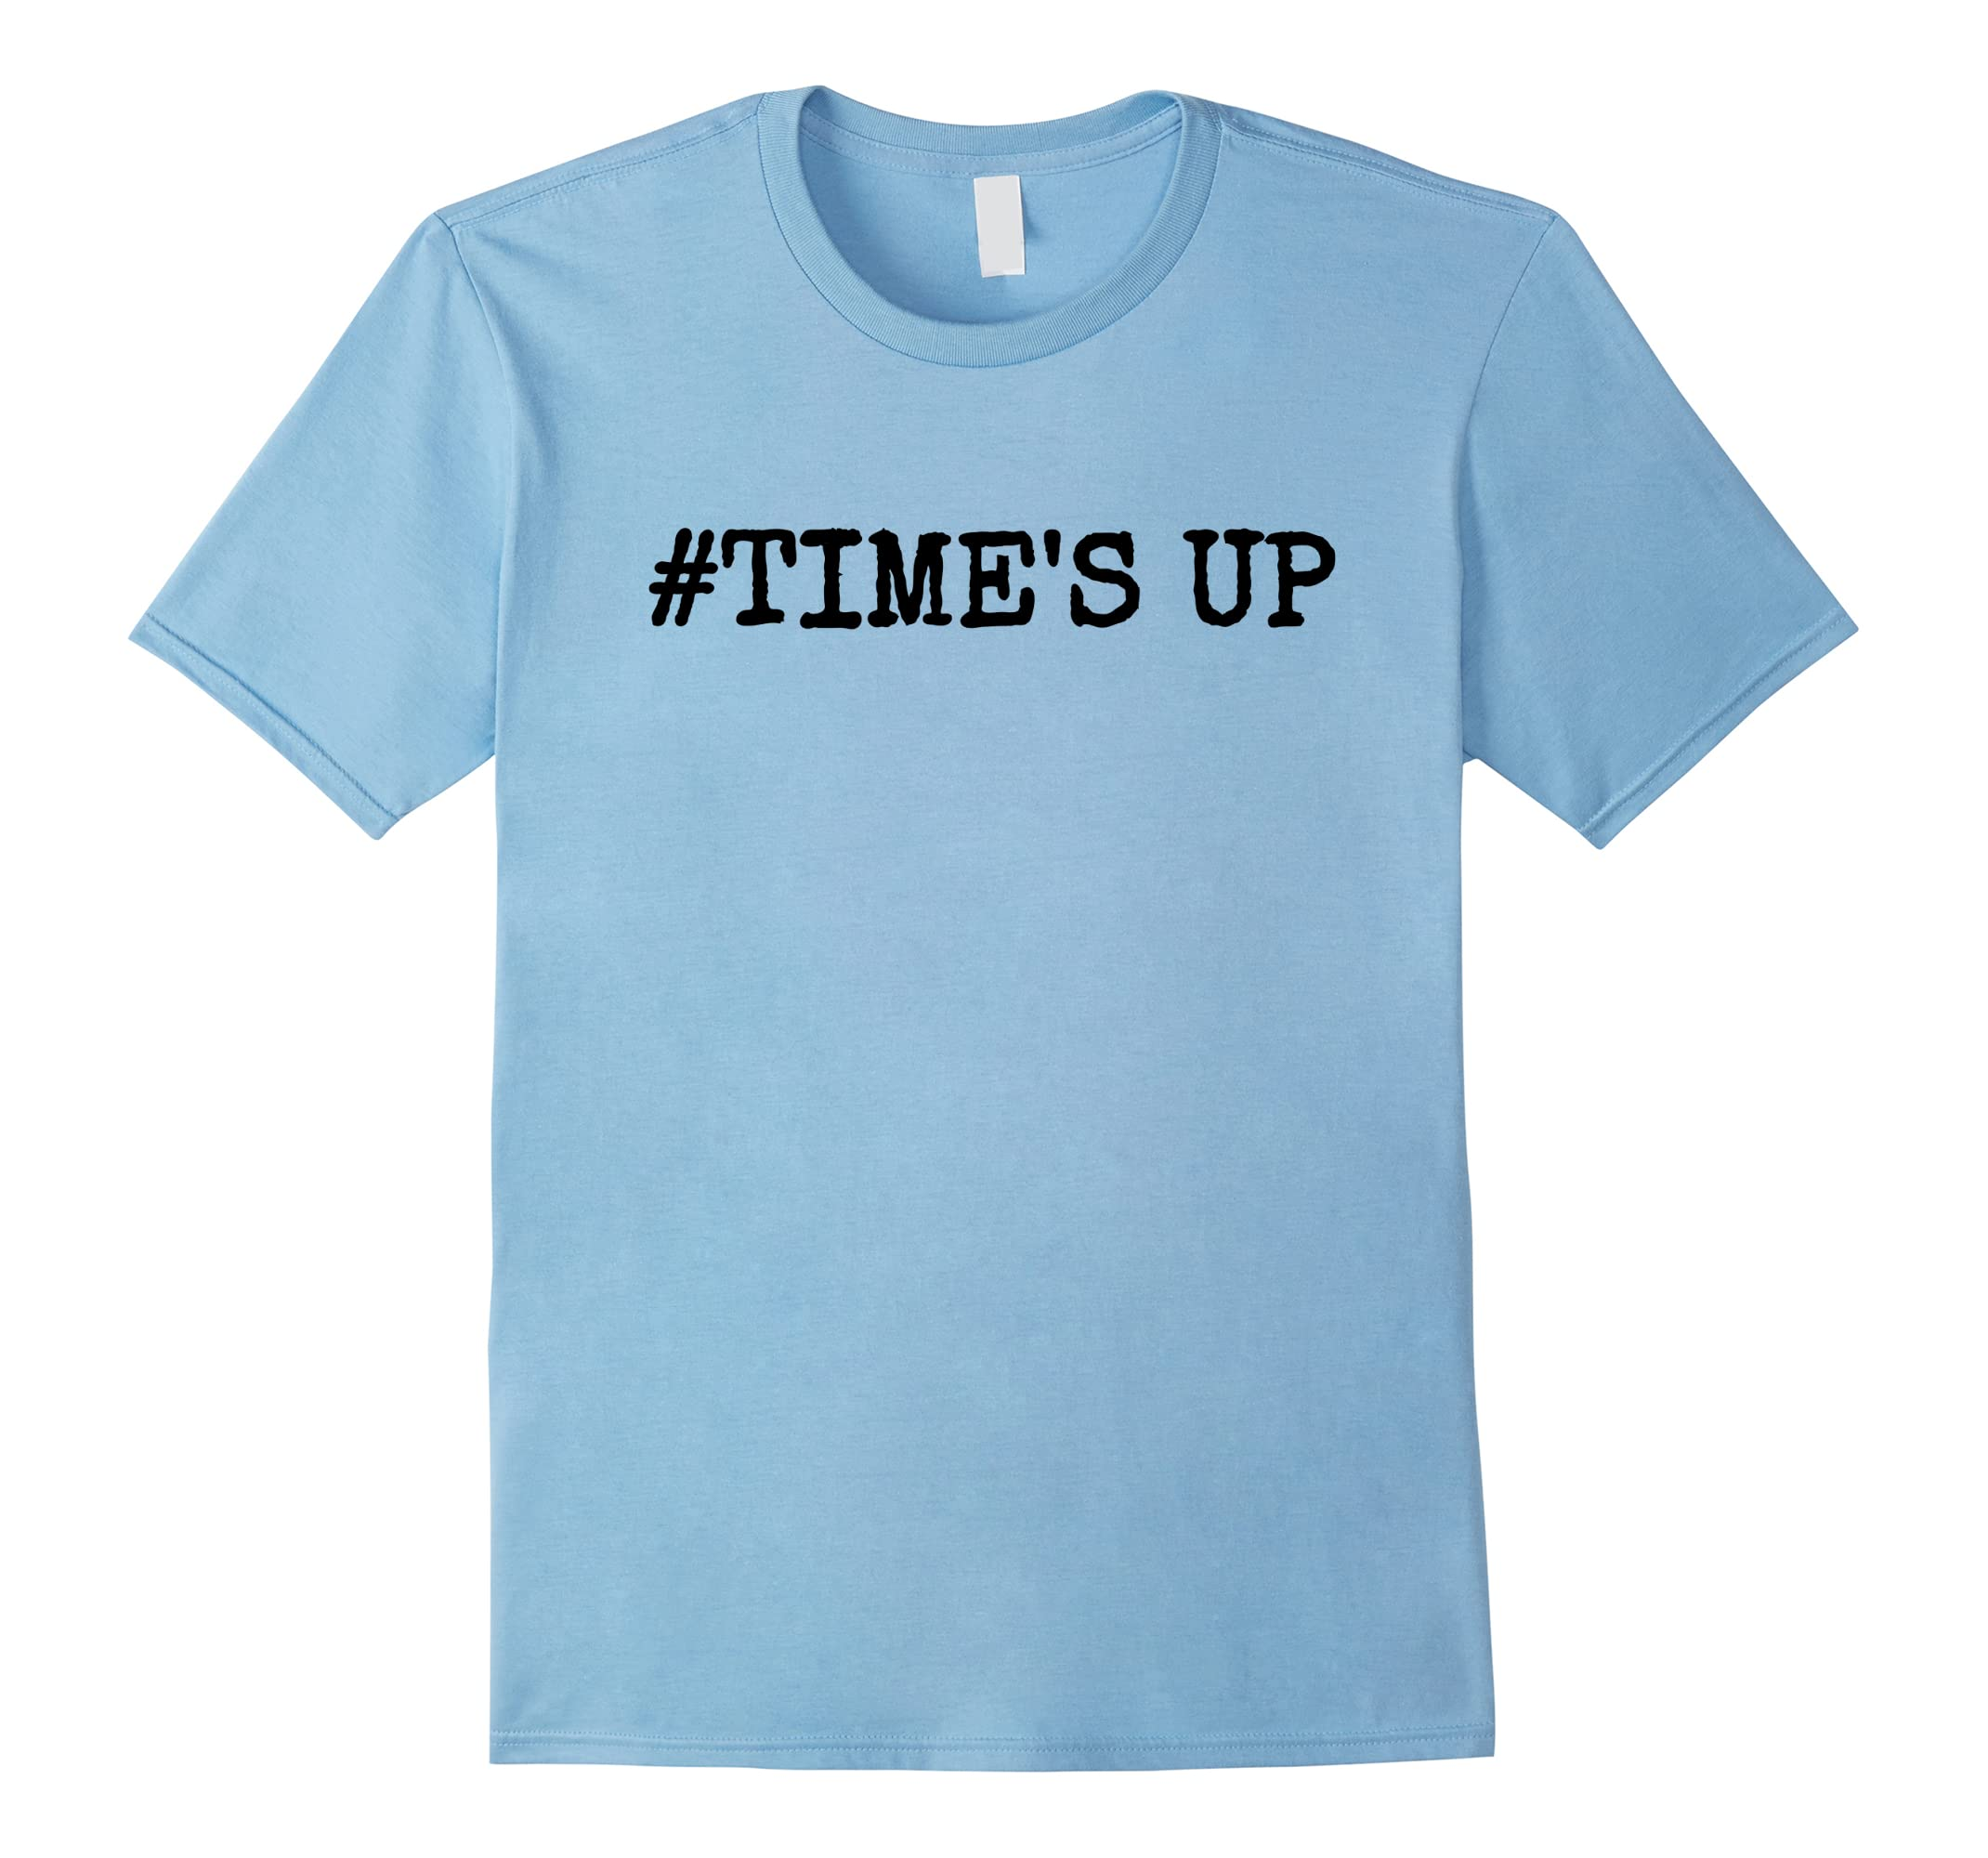 #TIME'S UP Shirt For Awareness Against Harassment-RT